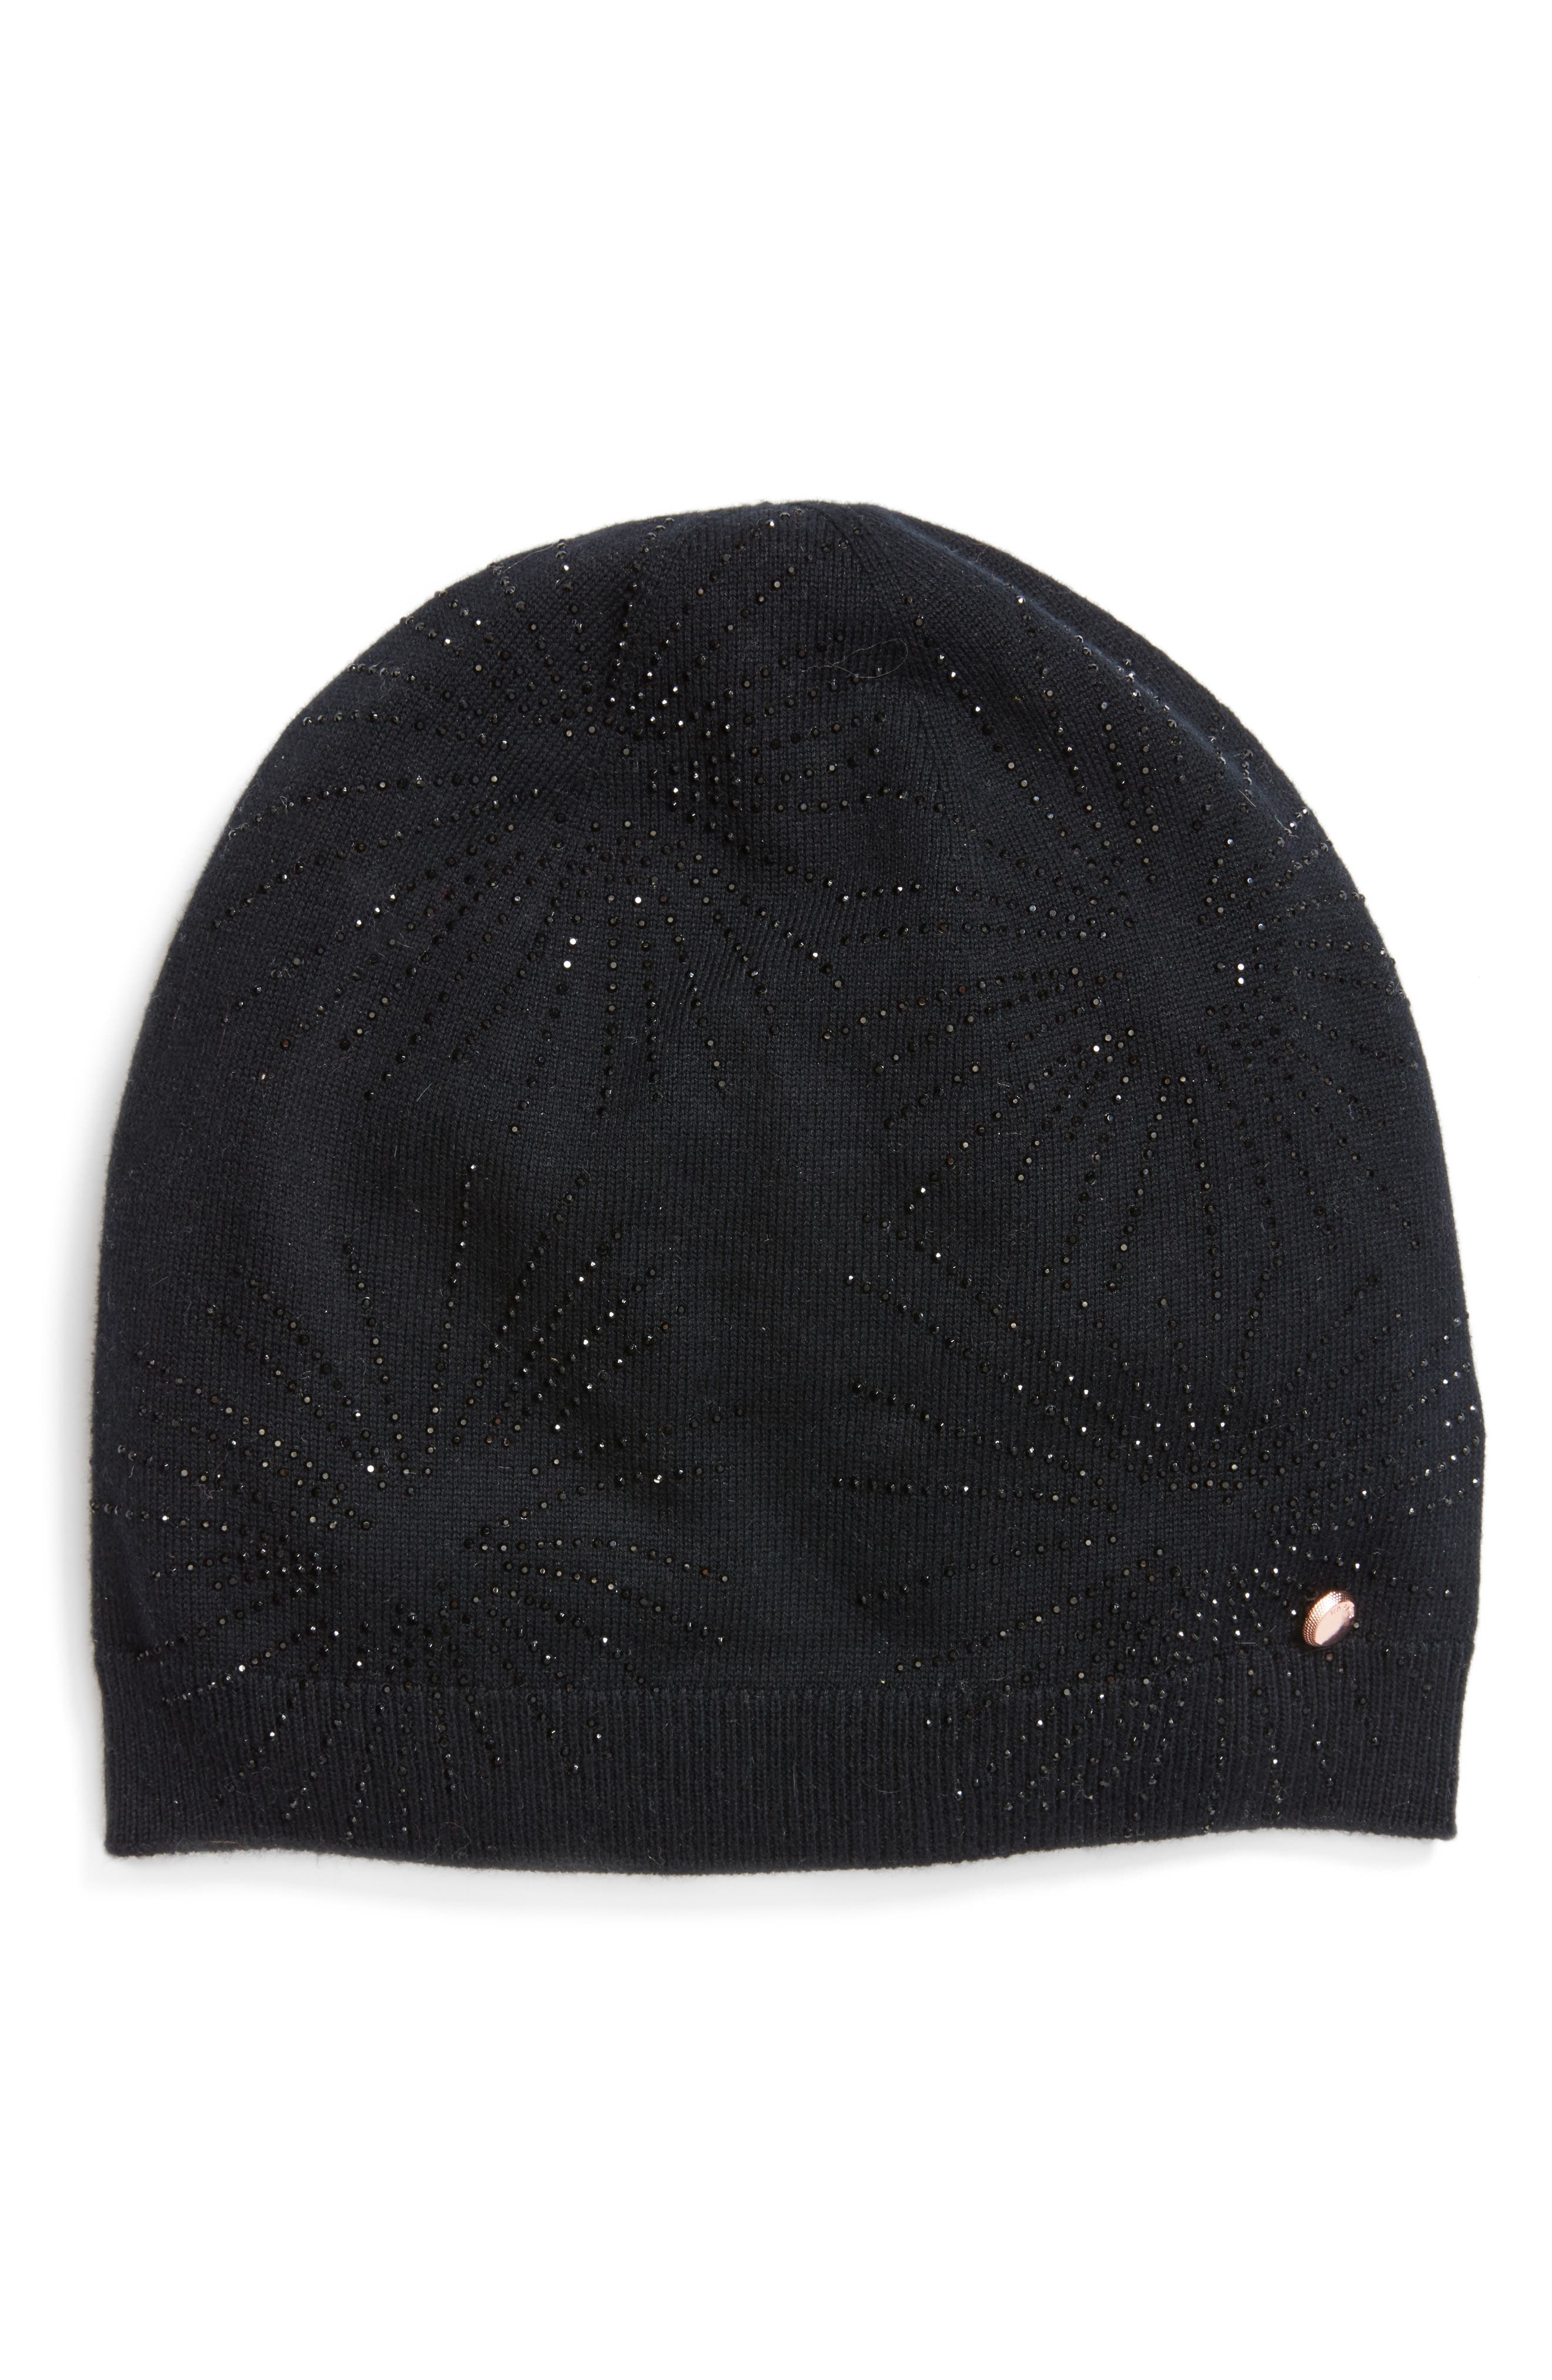 Stardust Embellished Knit Beanie,                         Main,                         color, 001